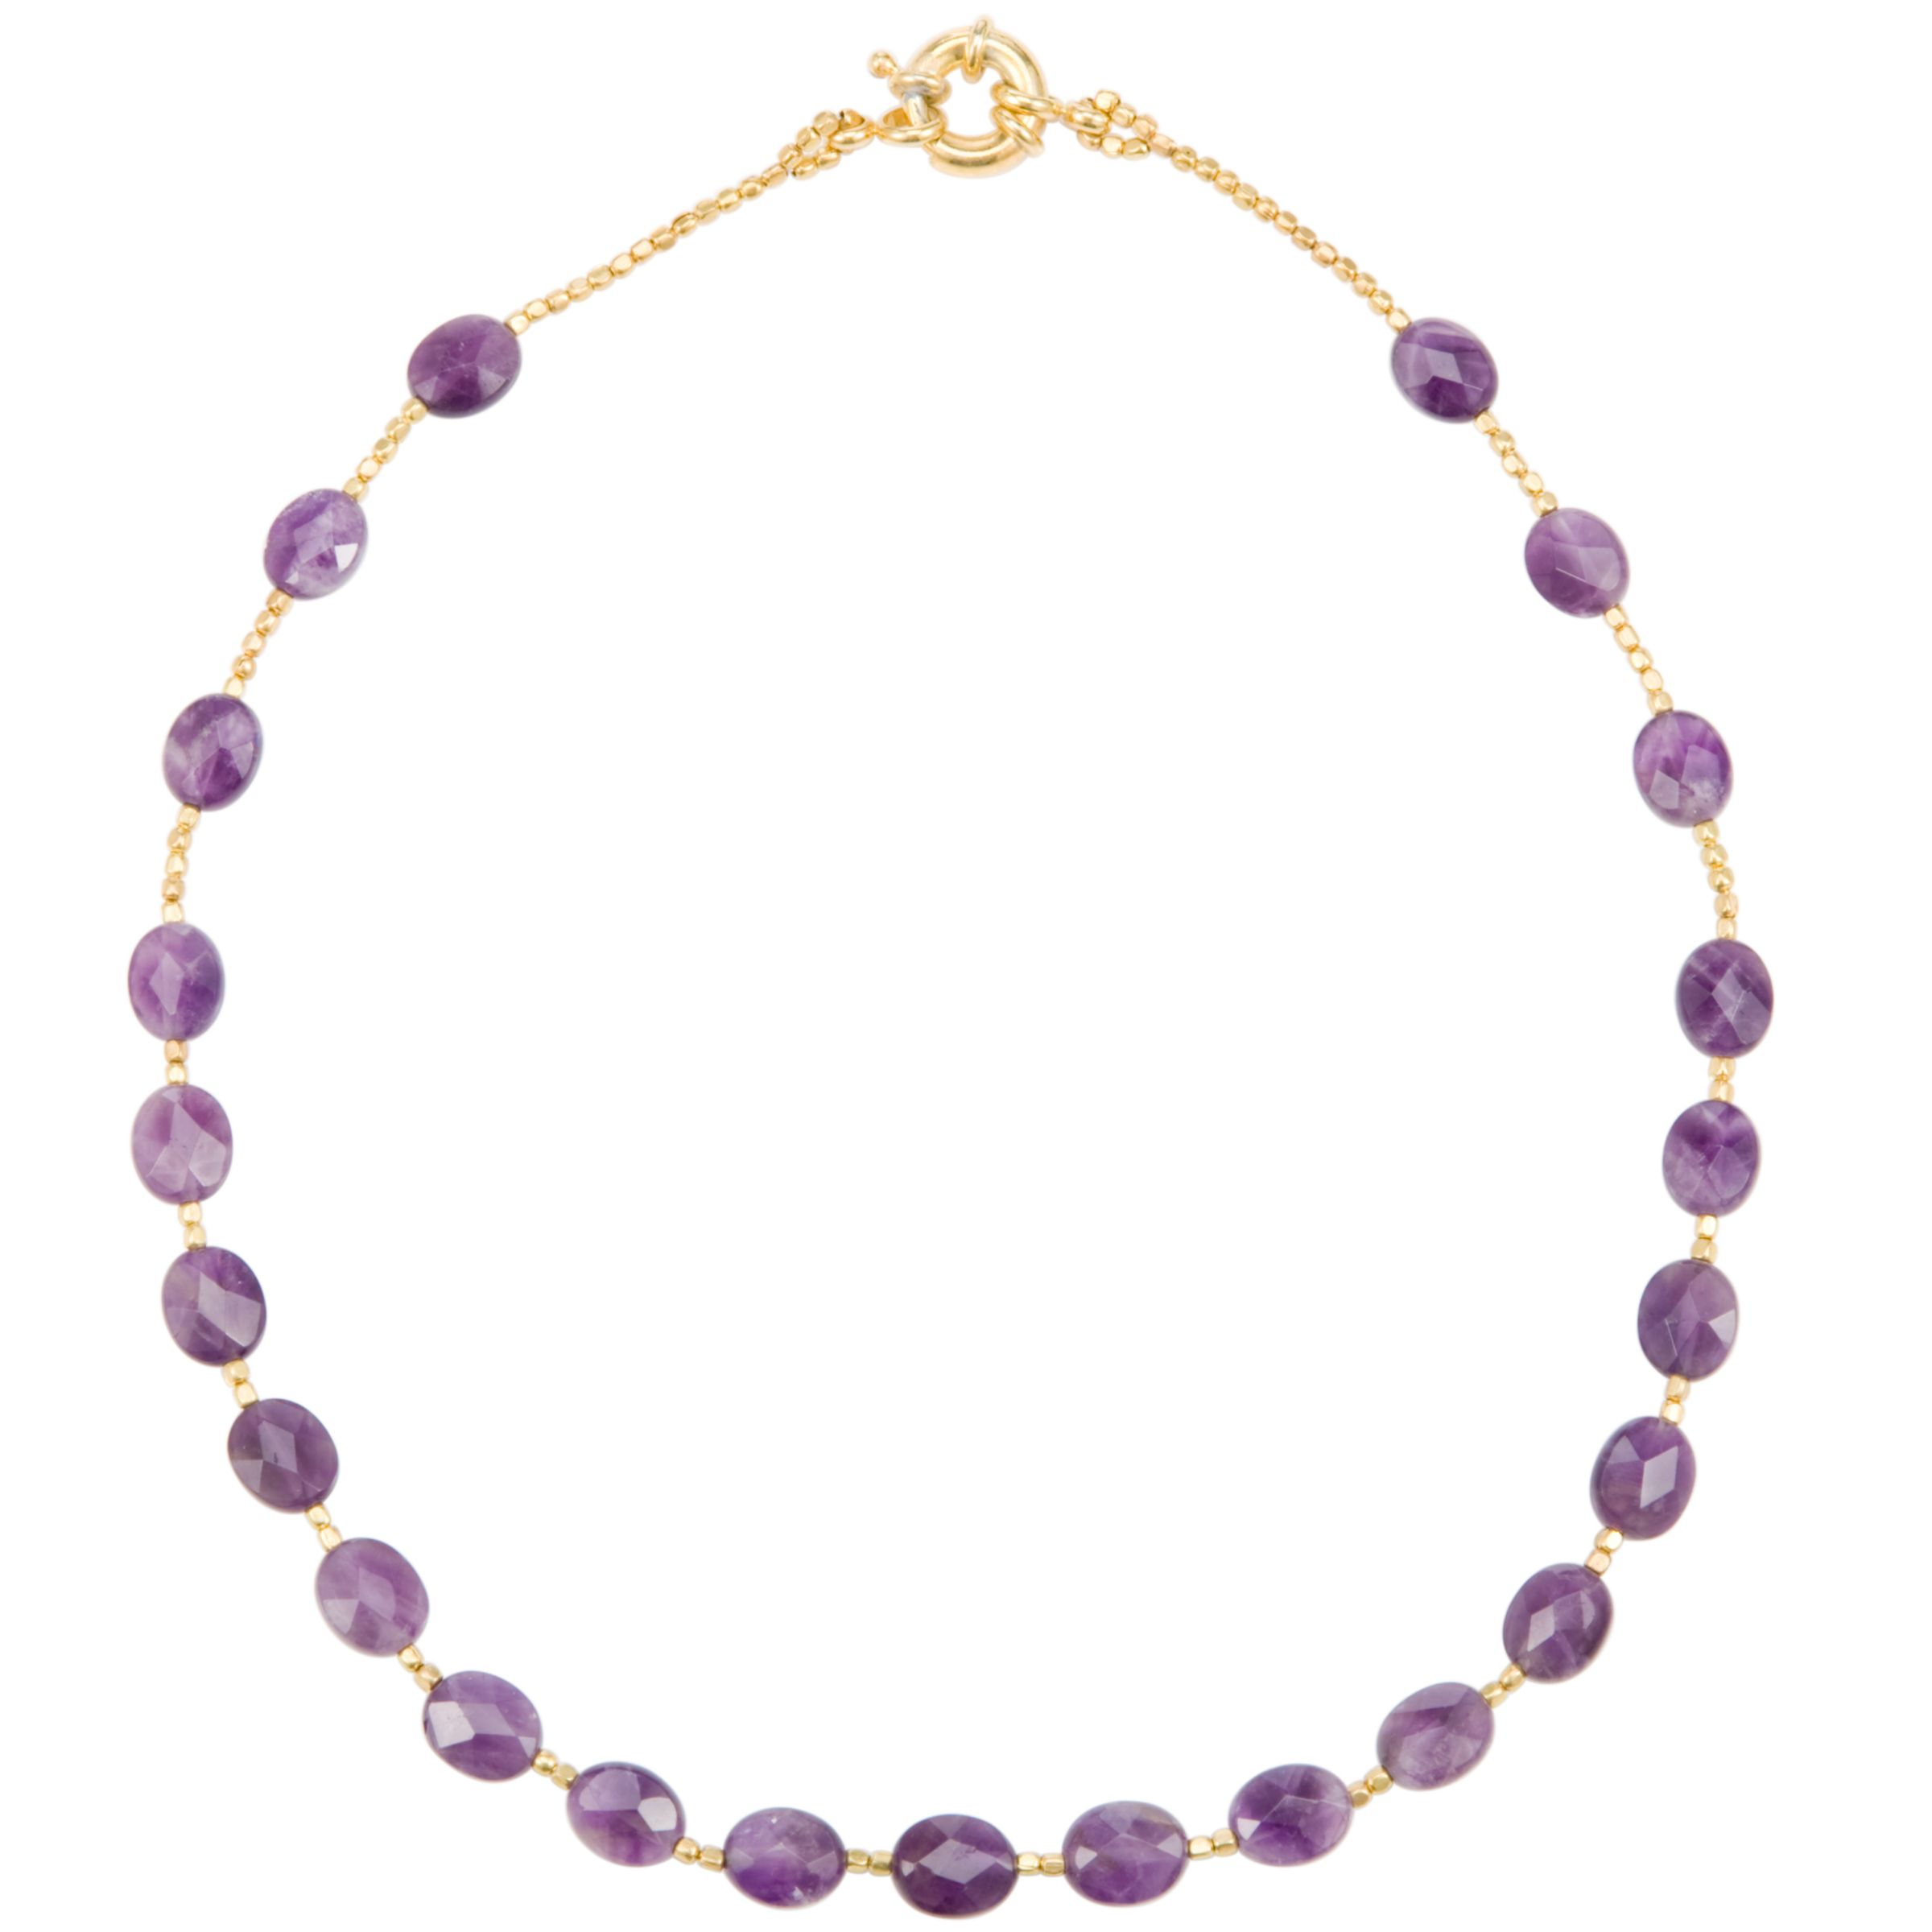 Azuni Faceted Semi Precious Stone Necklace, Amethyst